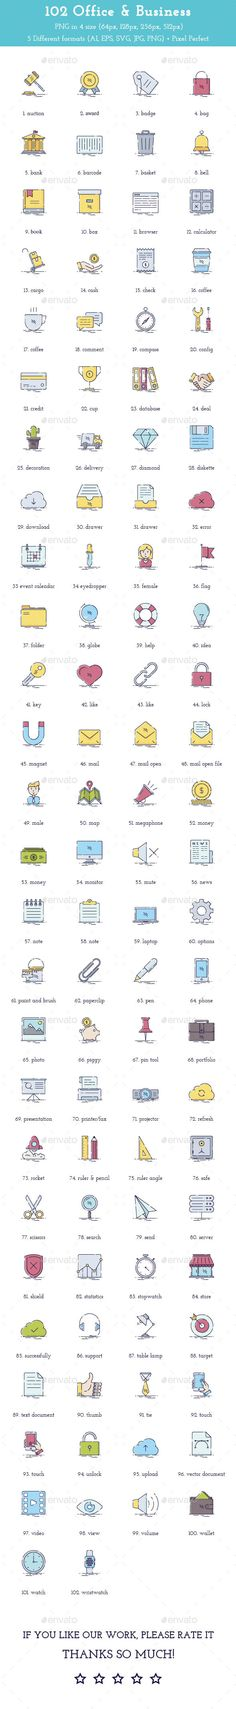 102 Office & Business Colorful Icons